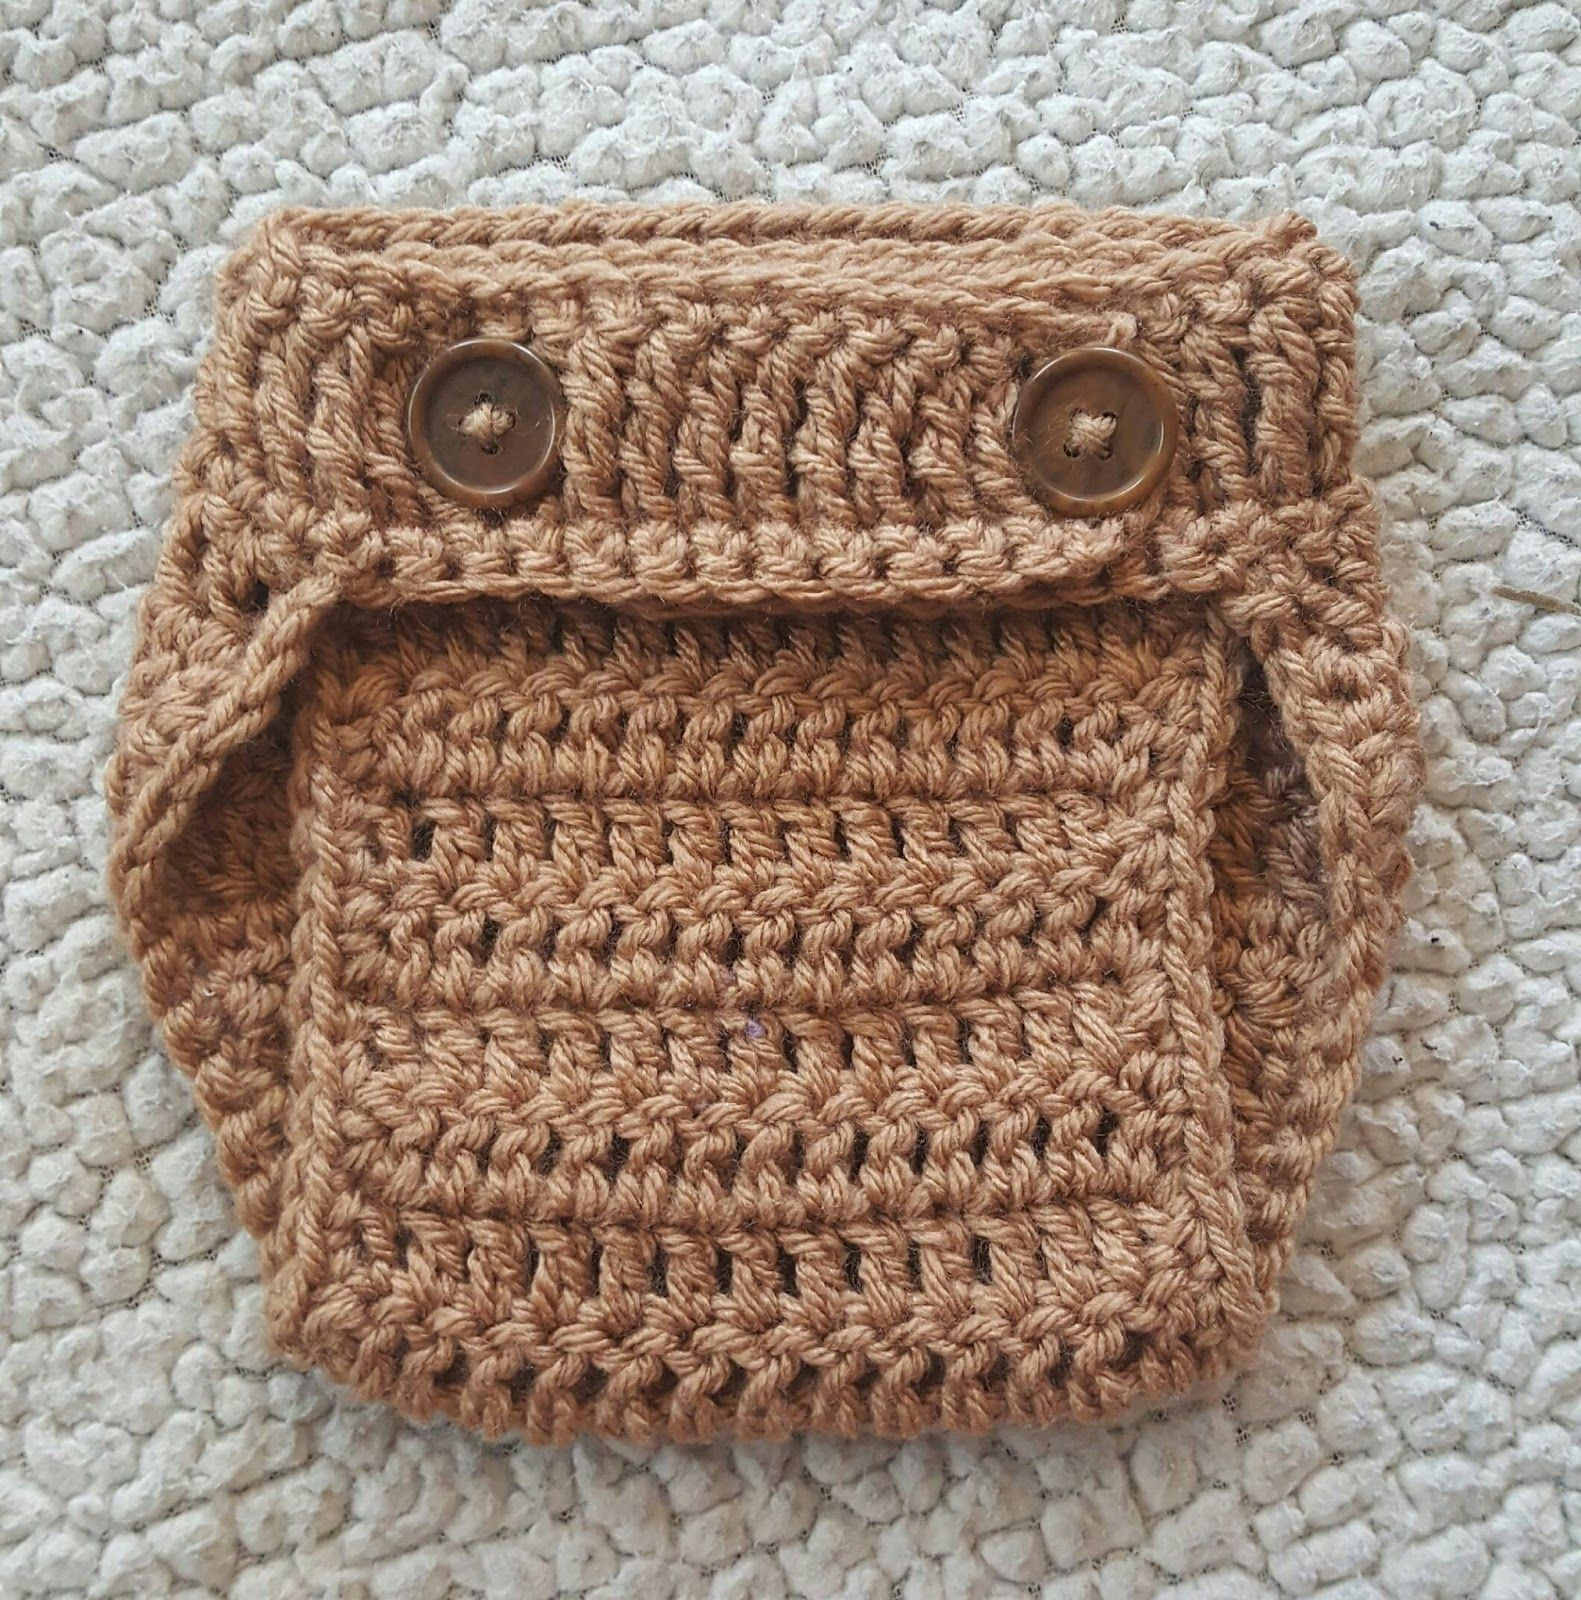 This is what came out of that: Crochet Newbprn/0-3 Diaper Cover ...